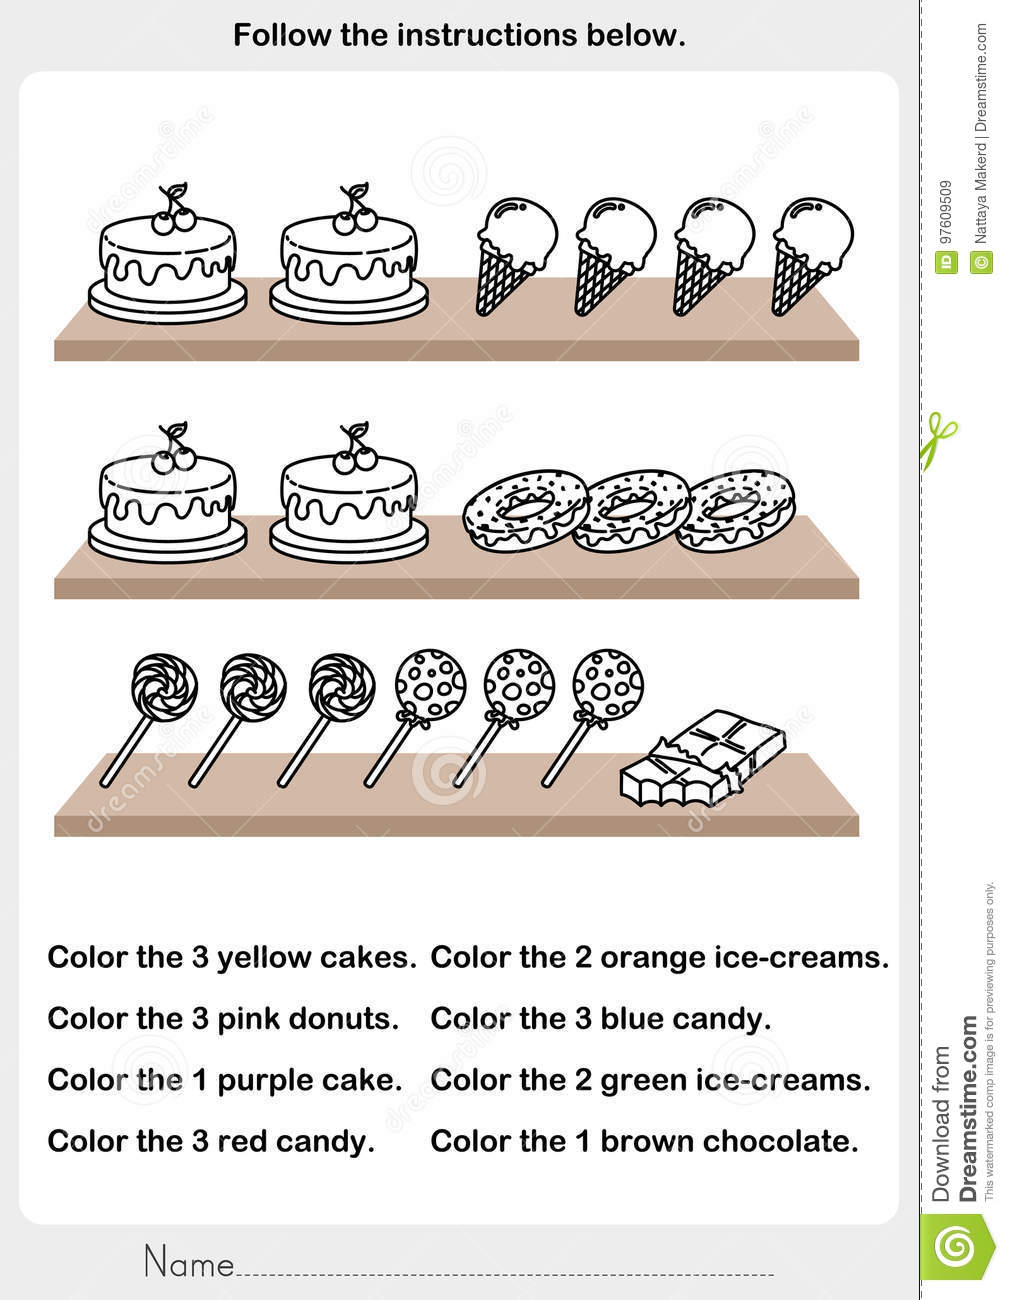 Color the picture - desserts on the shelf